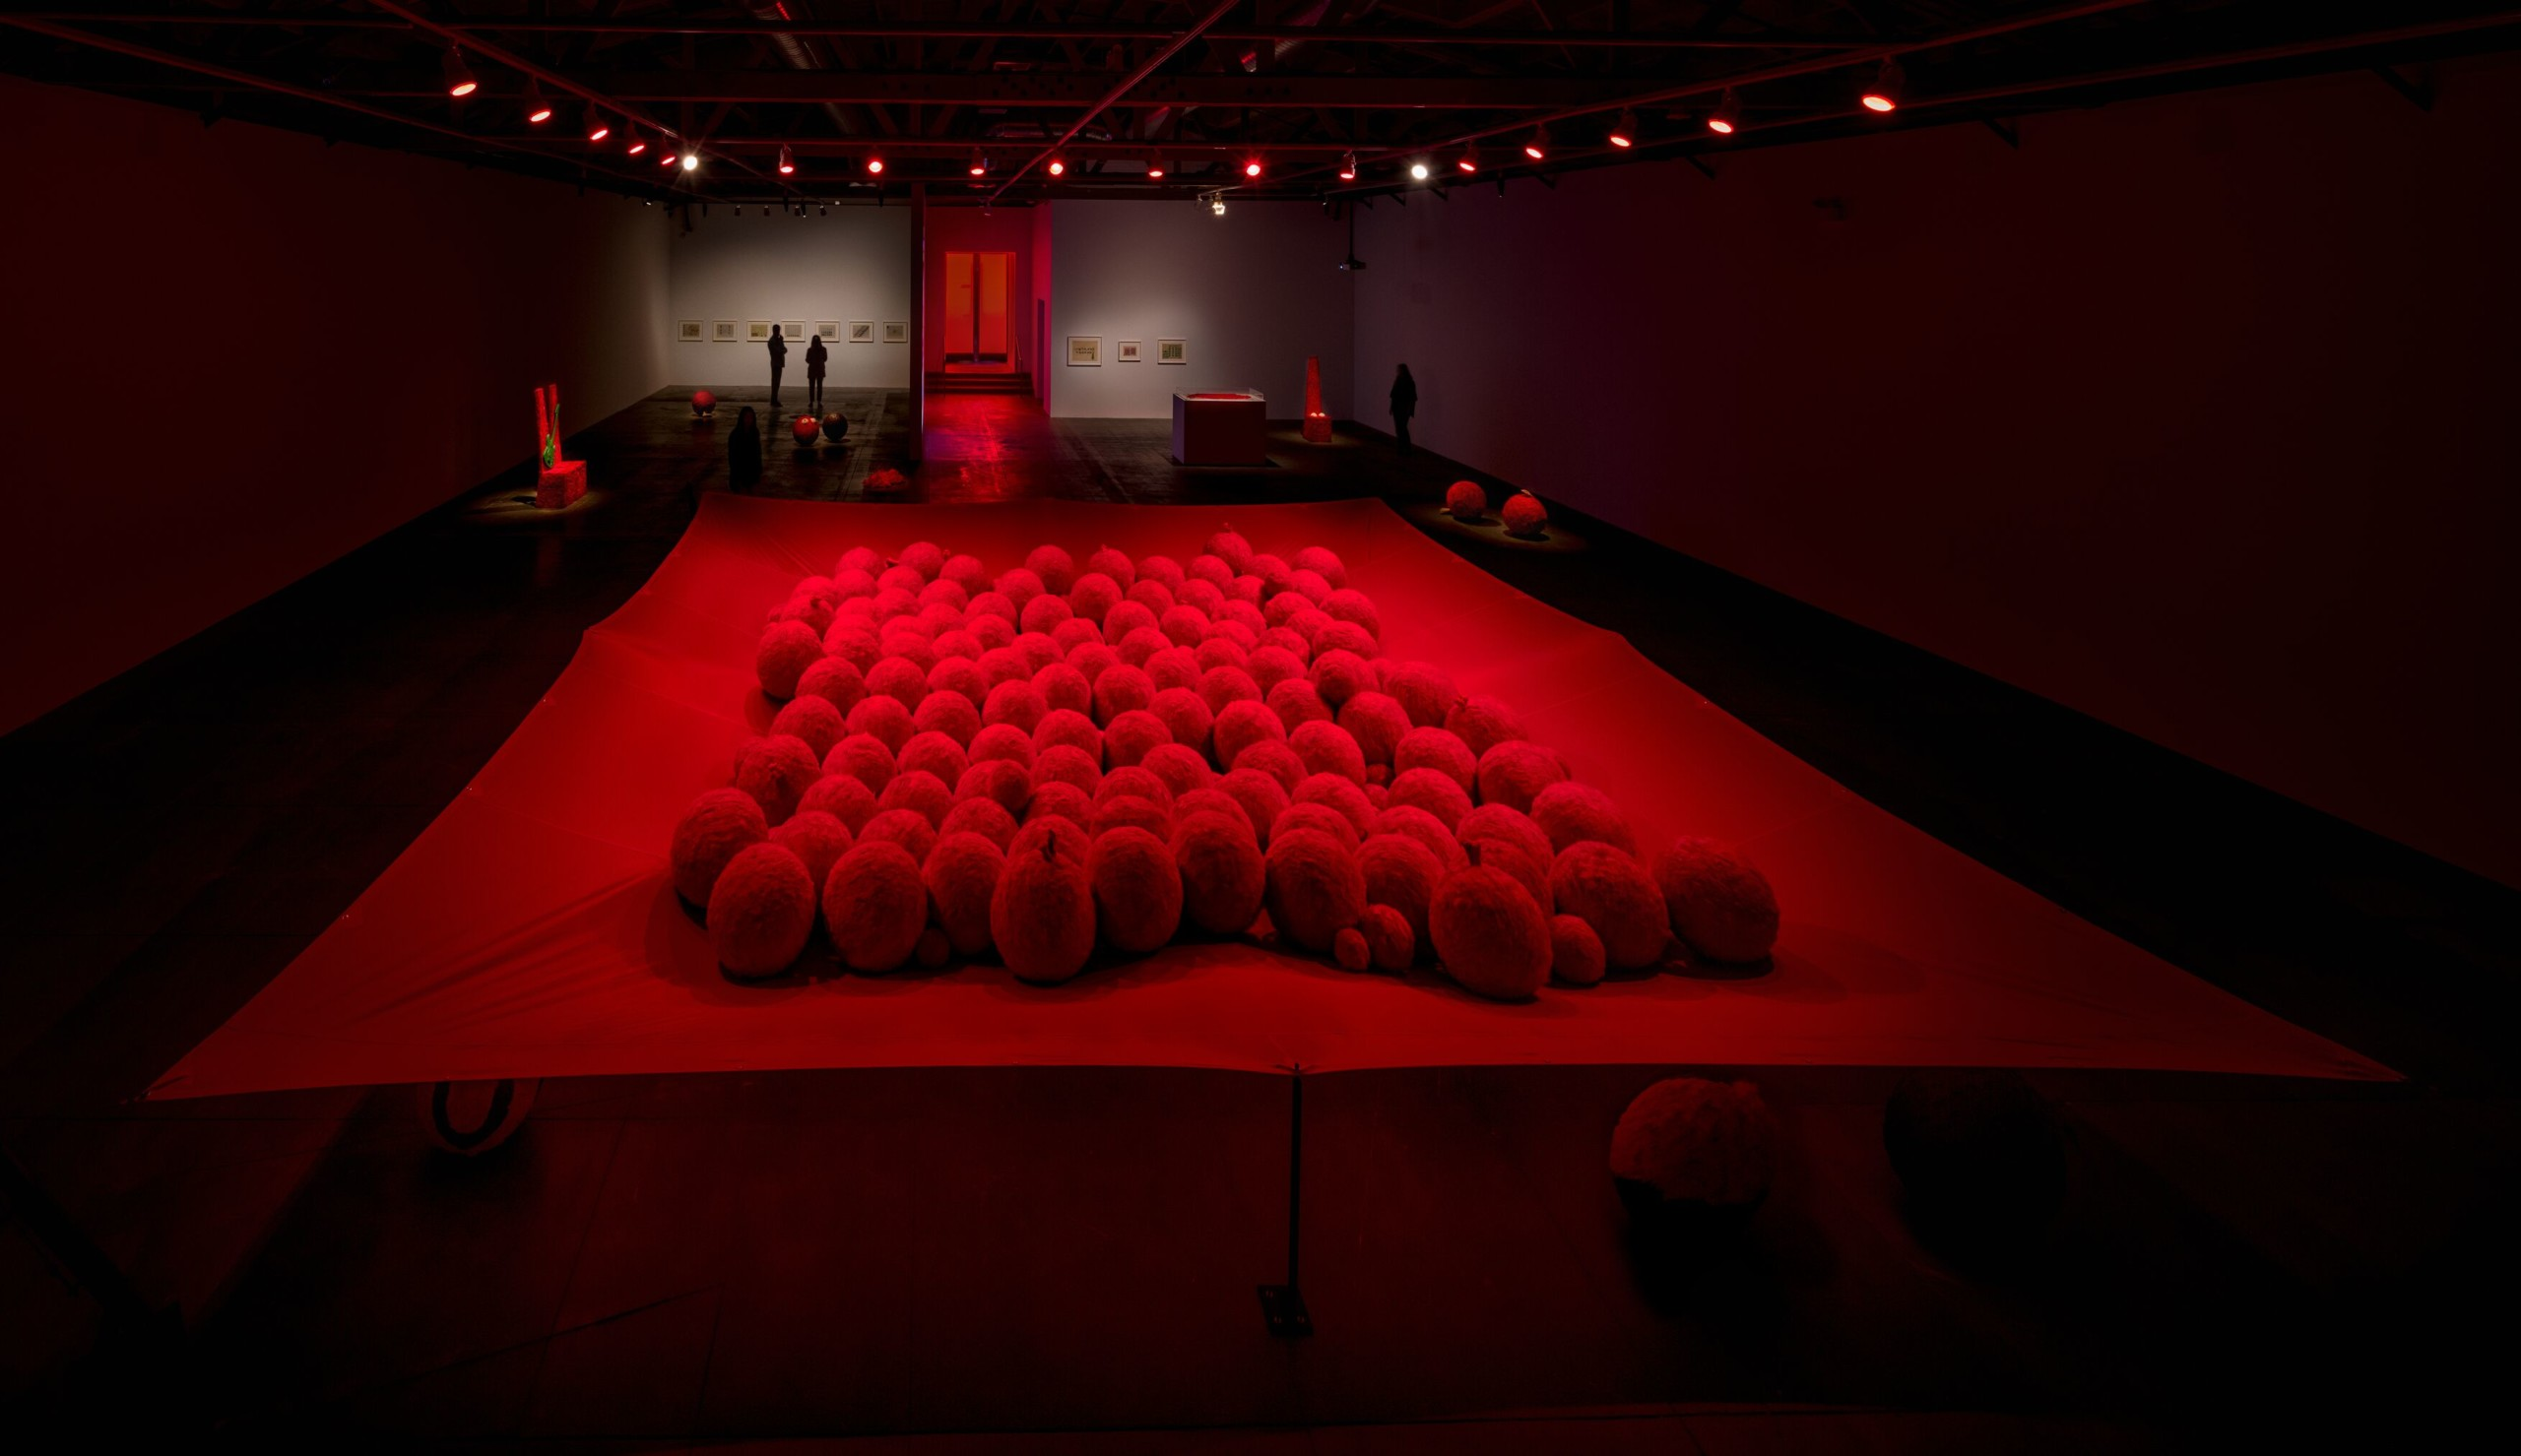 Gallery installation with red lighting on large-scale balls on fabric